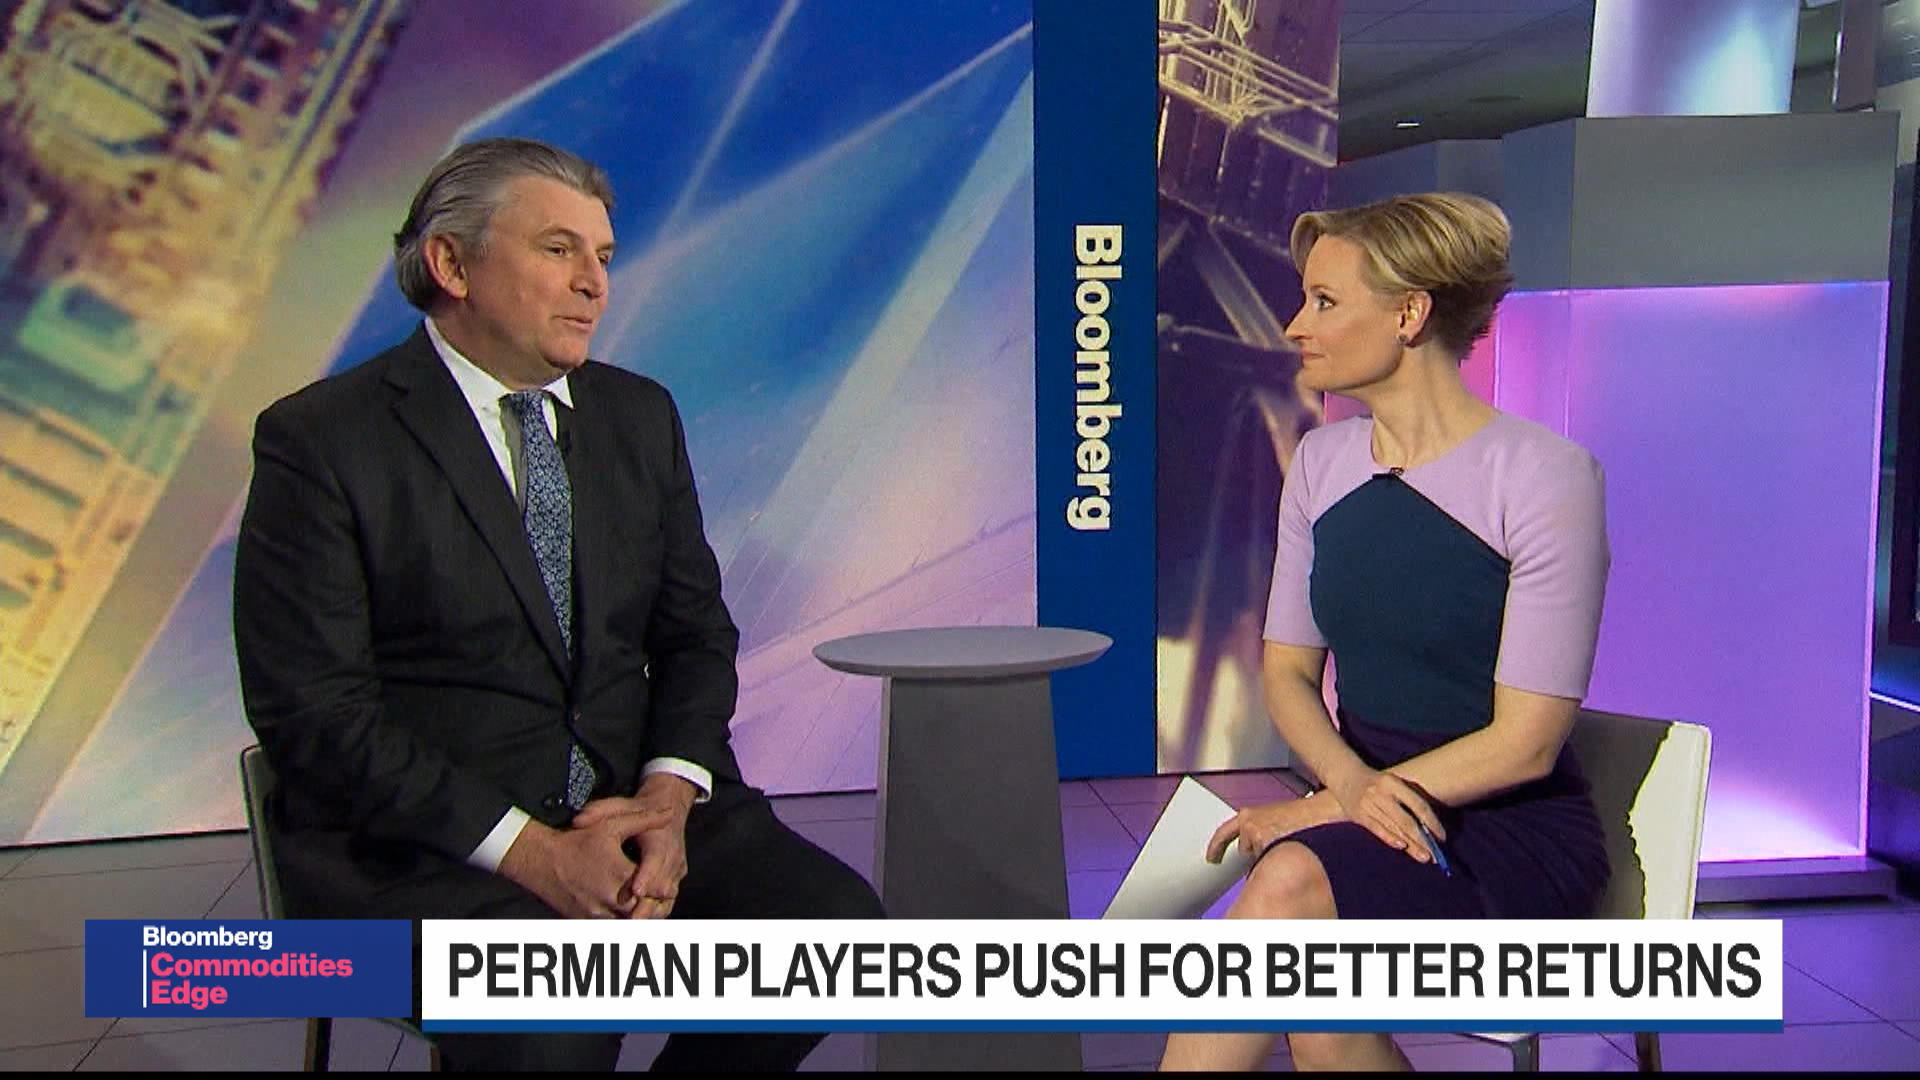 Pioneer Joins Permian Oil Dividend Party As Exxon 'Gets It Wrong'